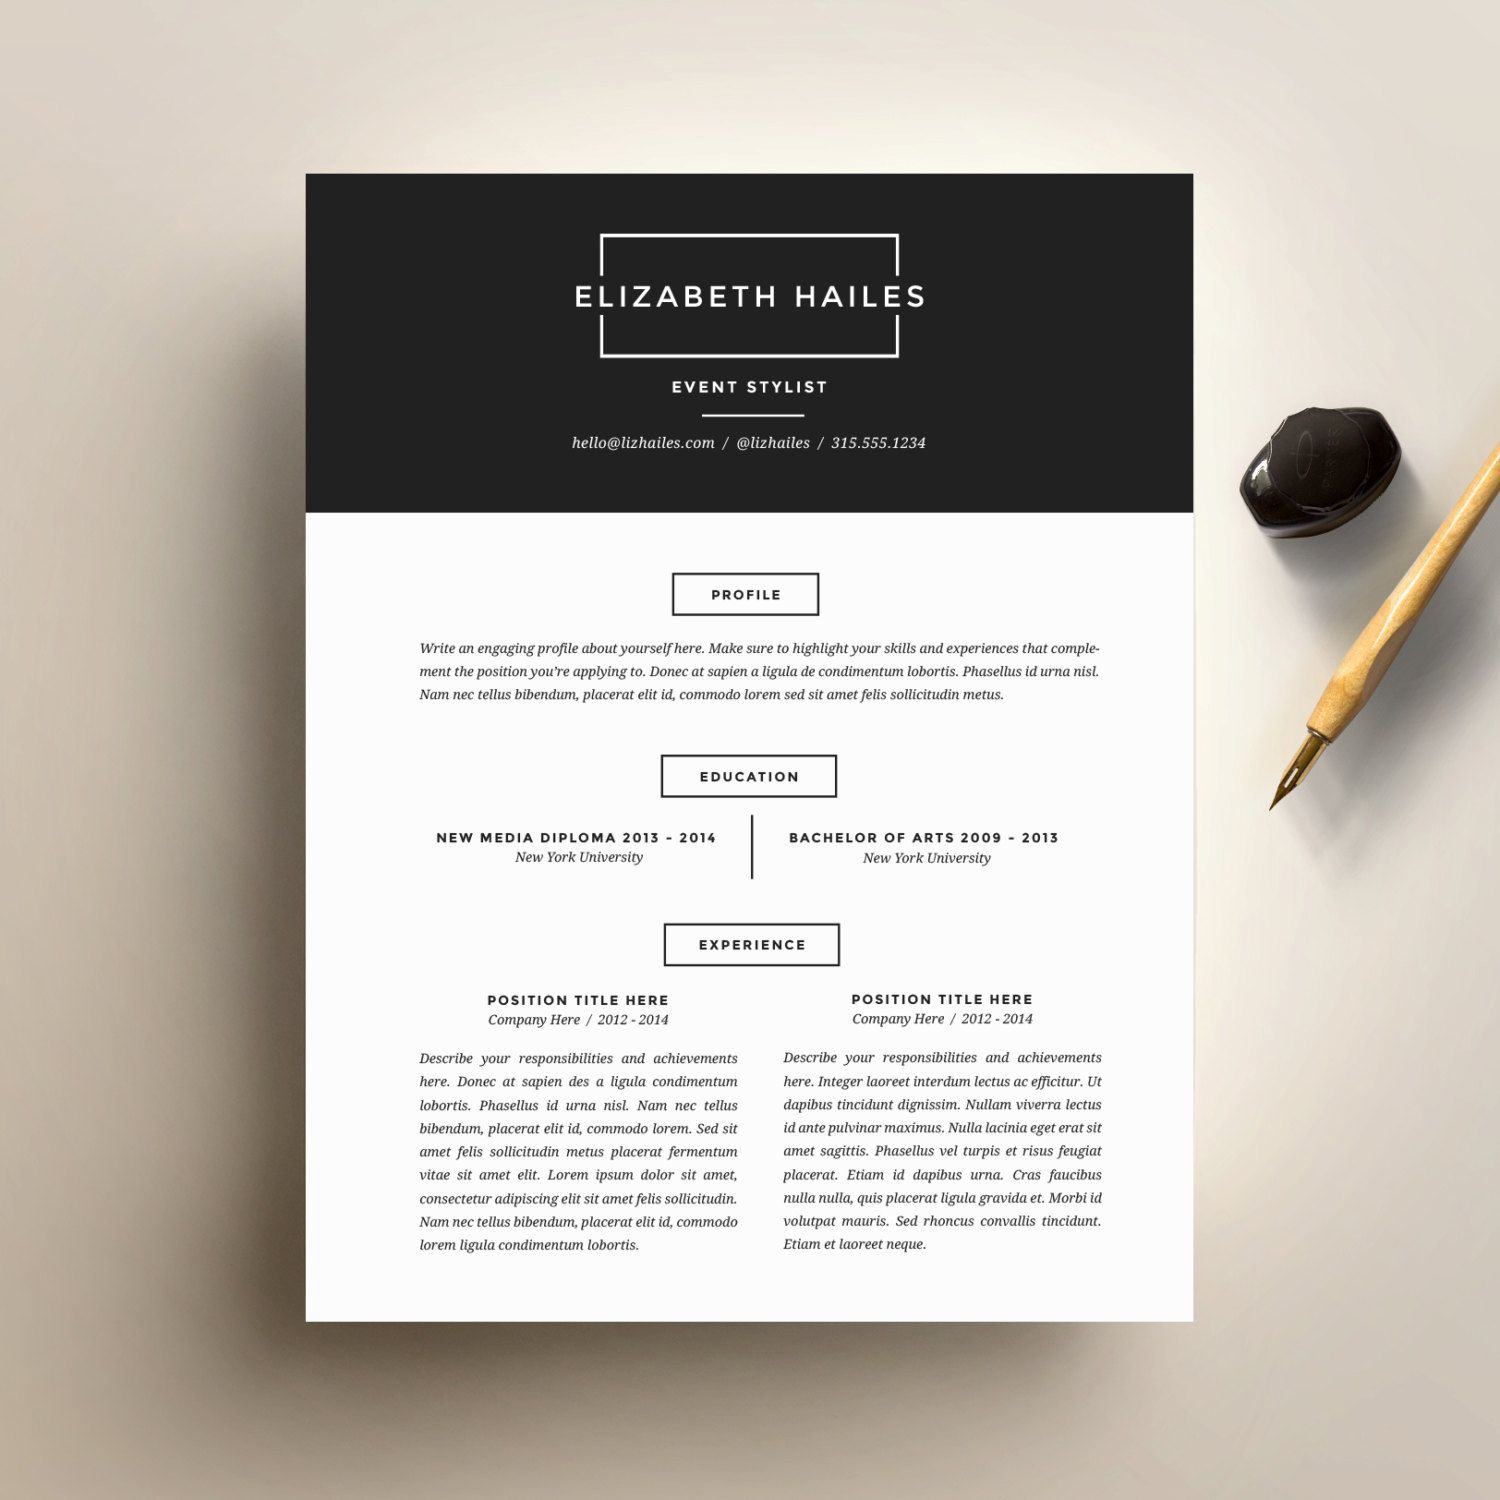 8 Creative and Appropriate Resume Templates for